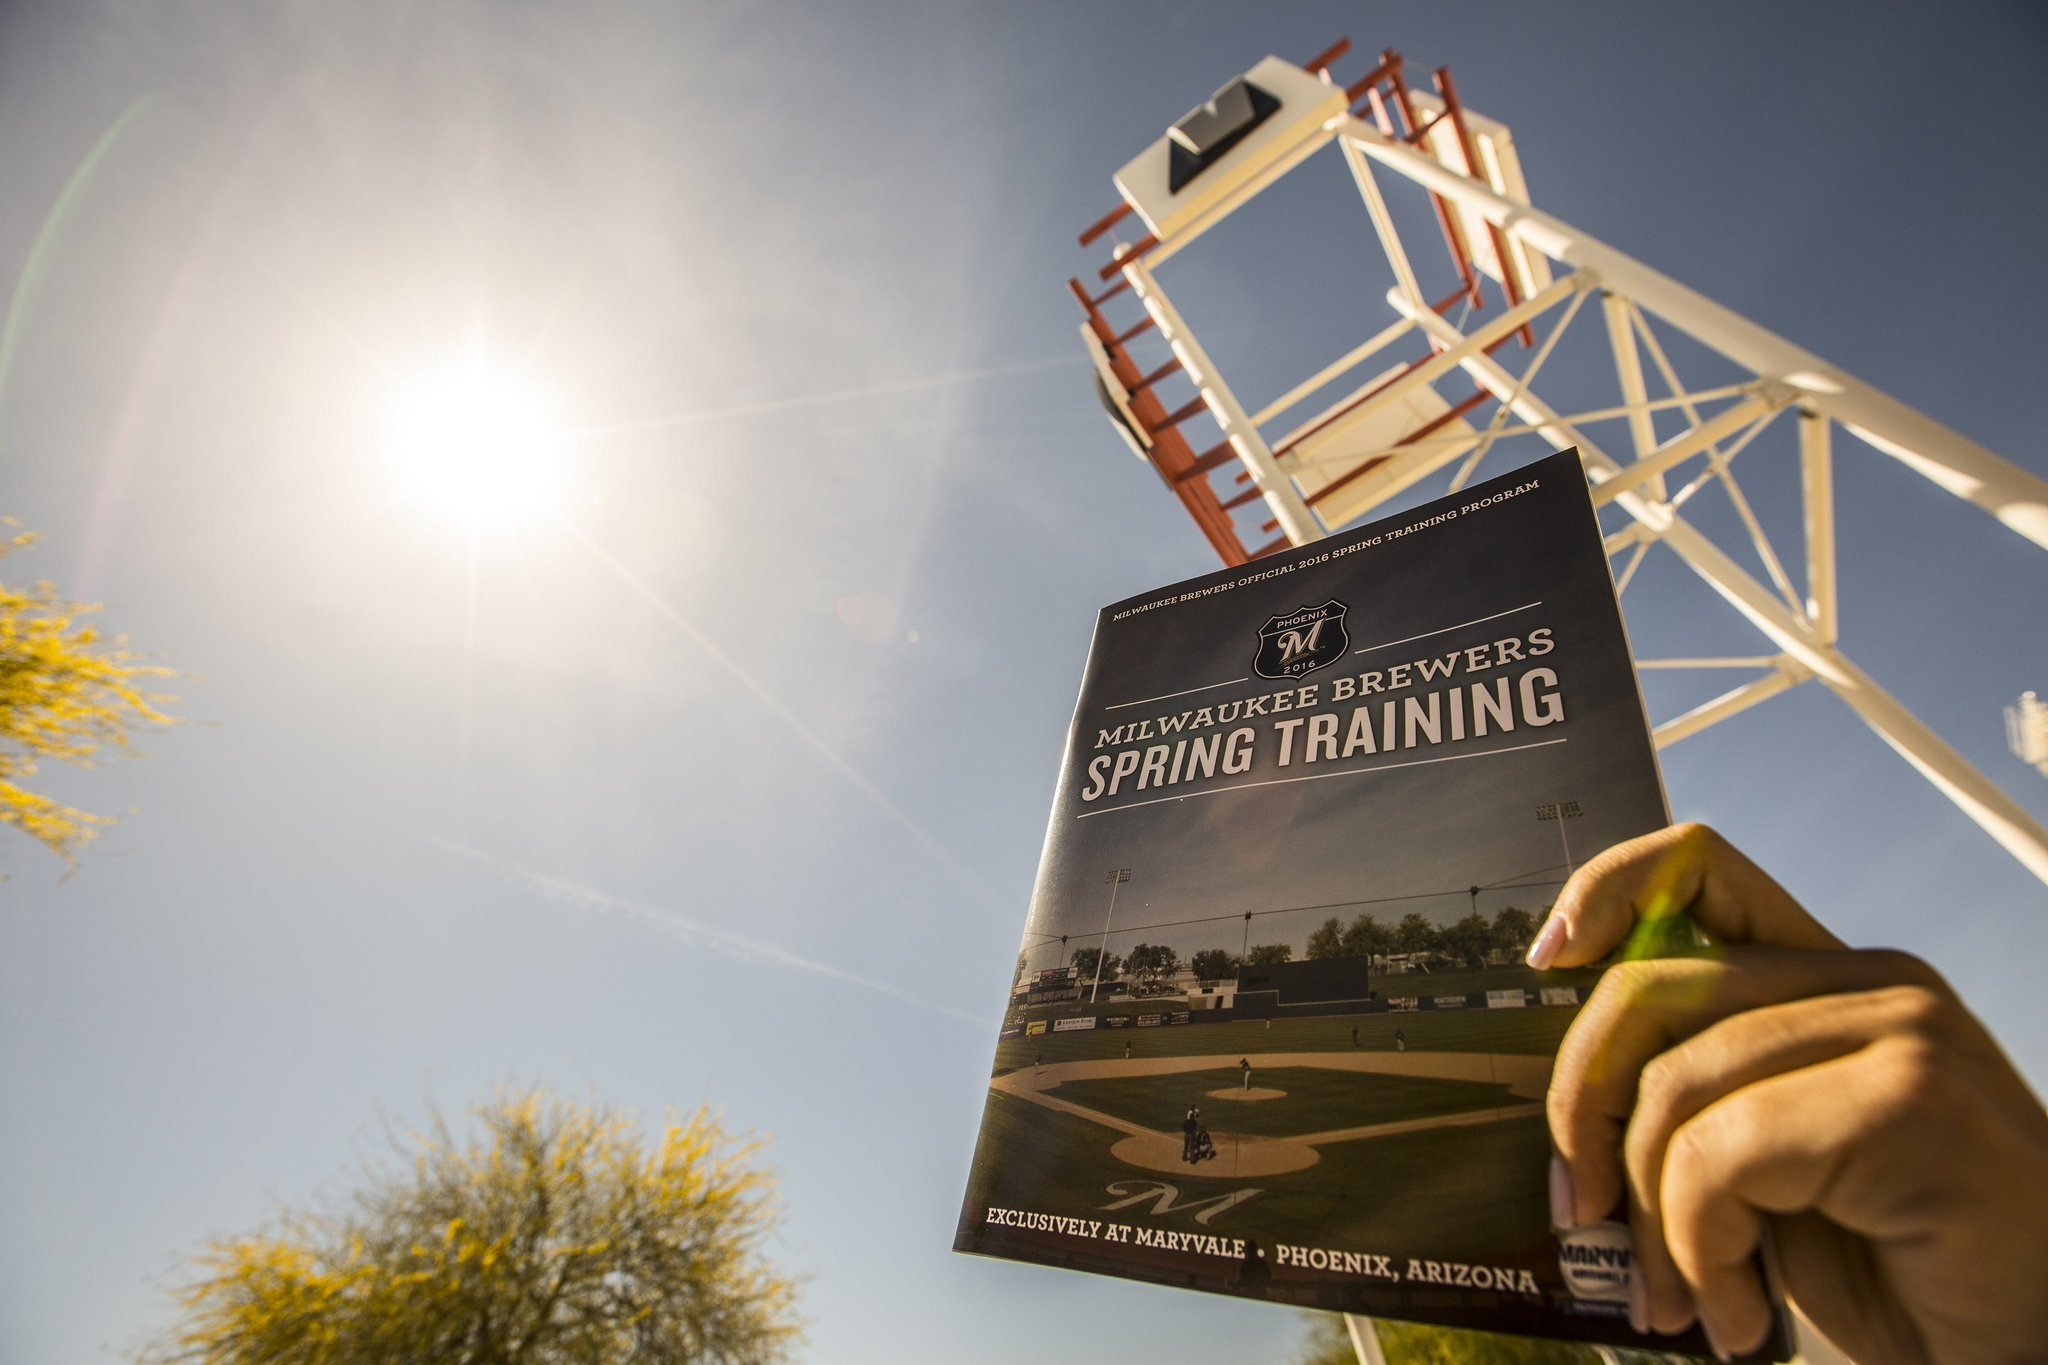 County wants Milwaukee Brewers' spring training in Tucson